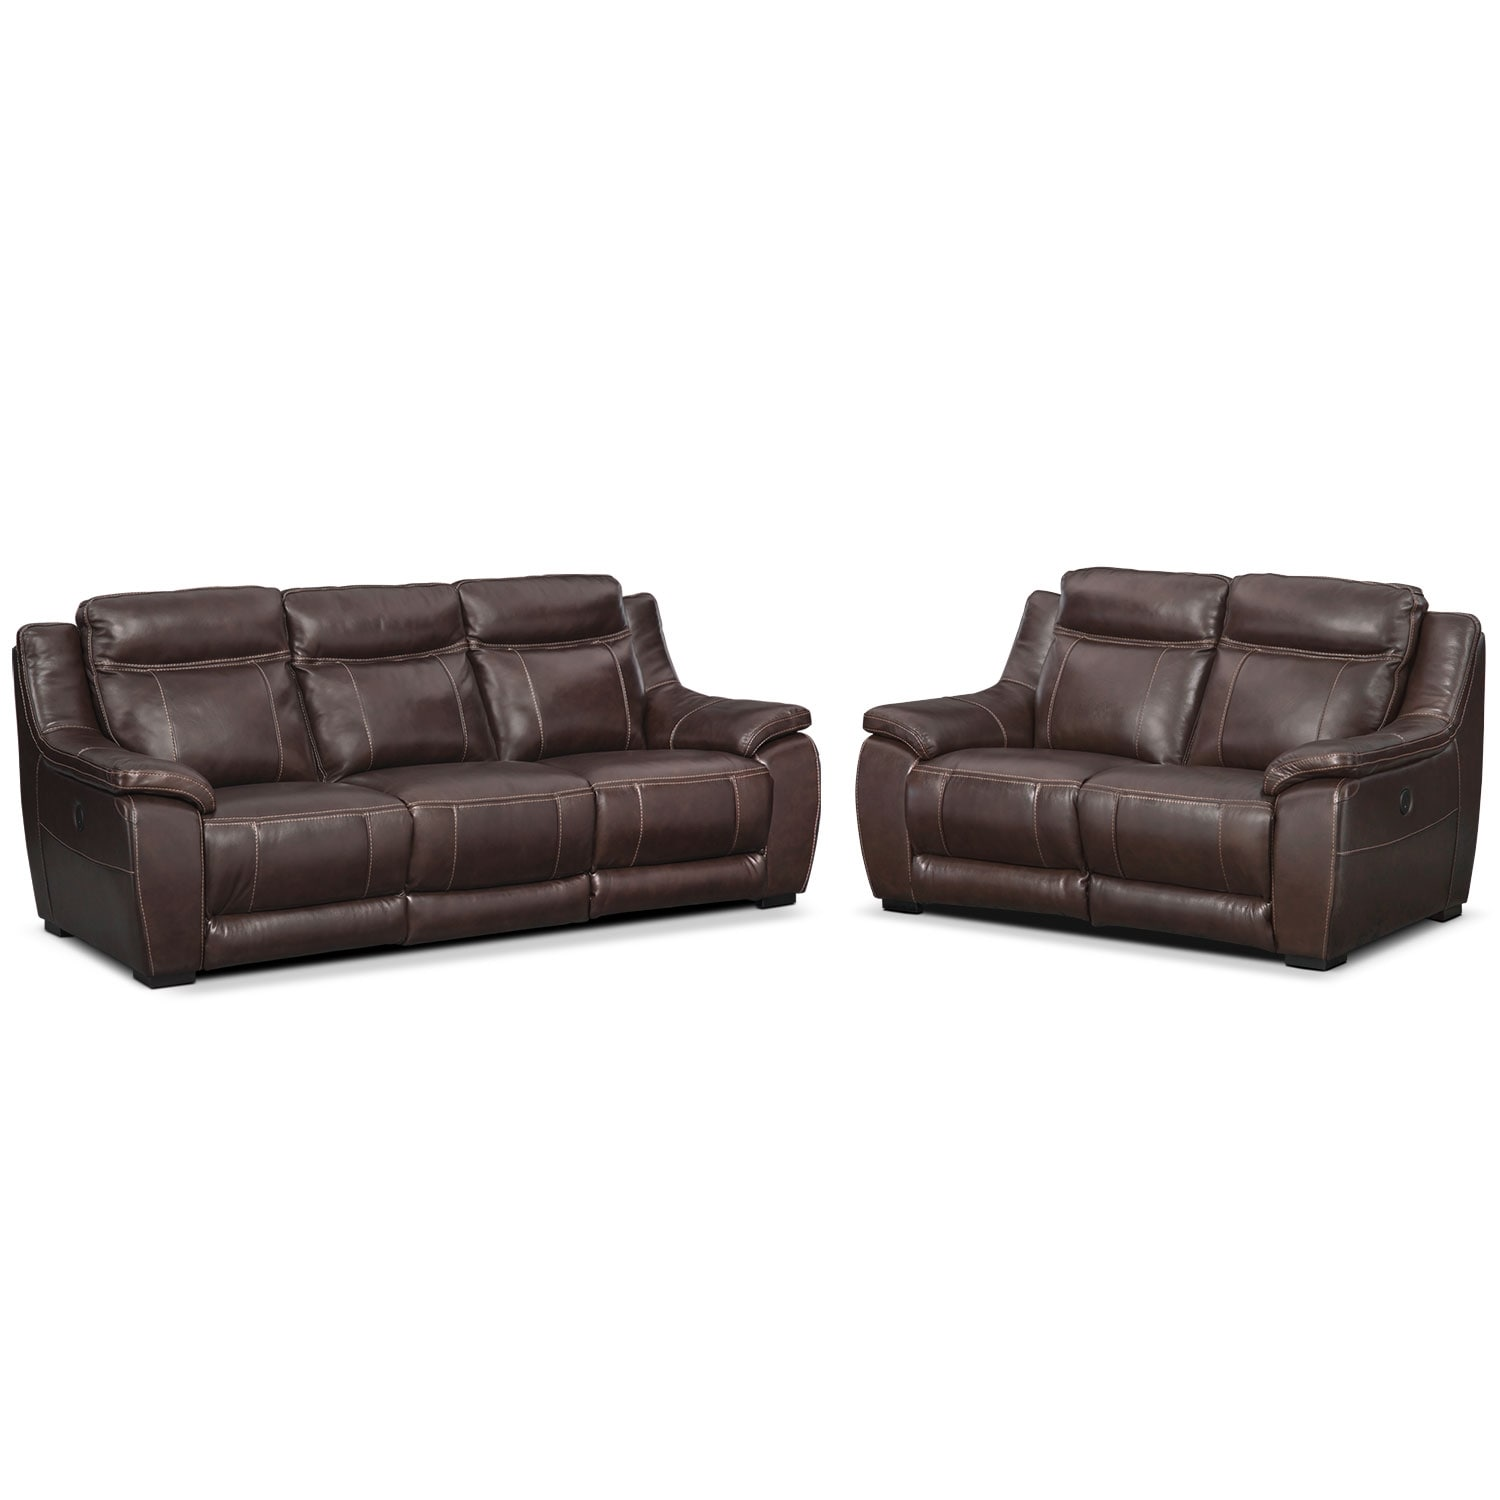 Lido Power Reclining Sofa And Reclining Loveseat Set Brown American Signature Furniture